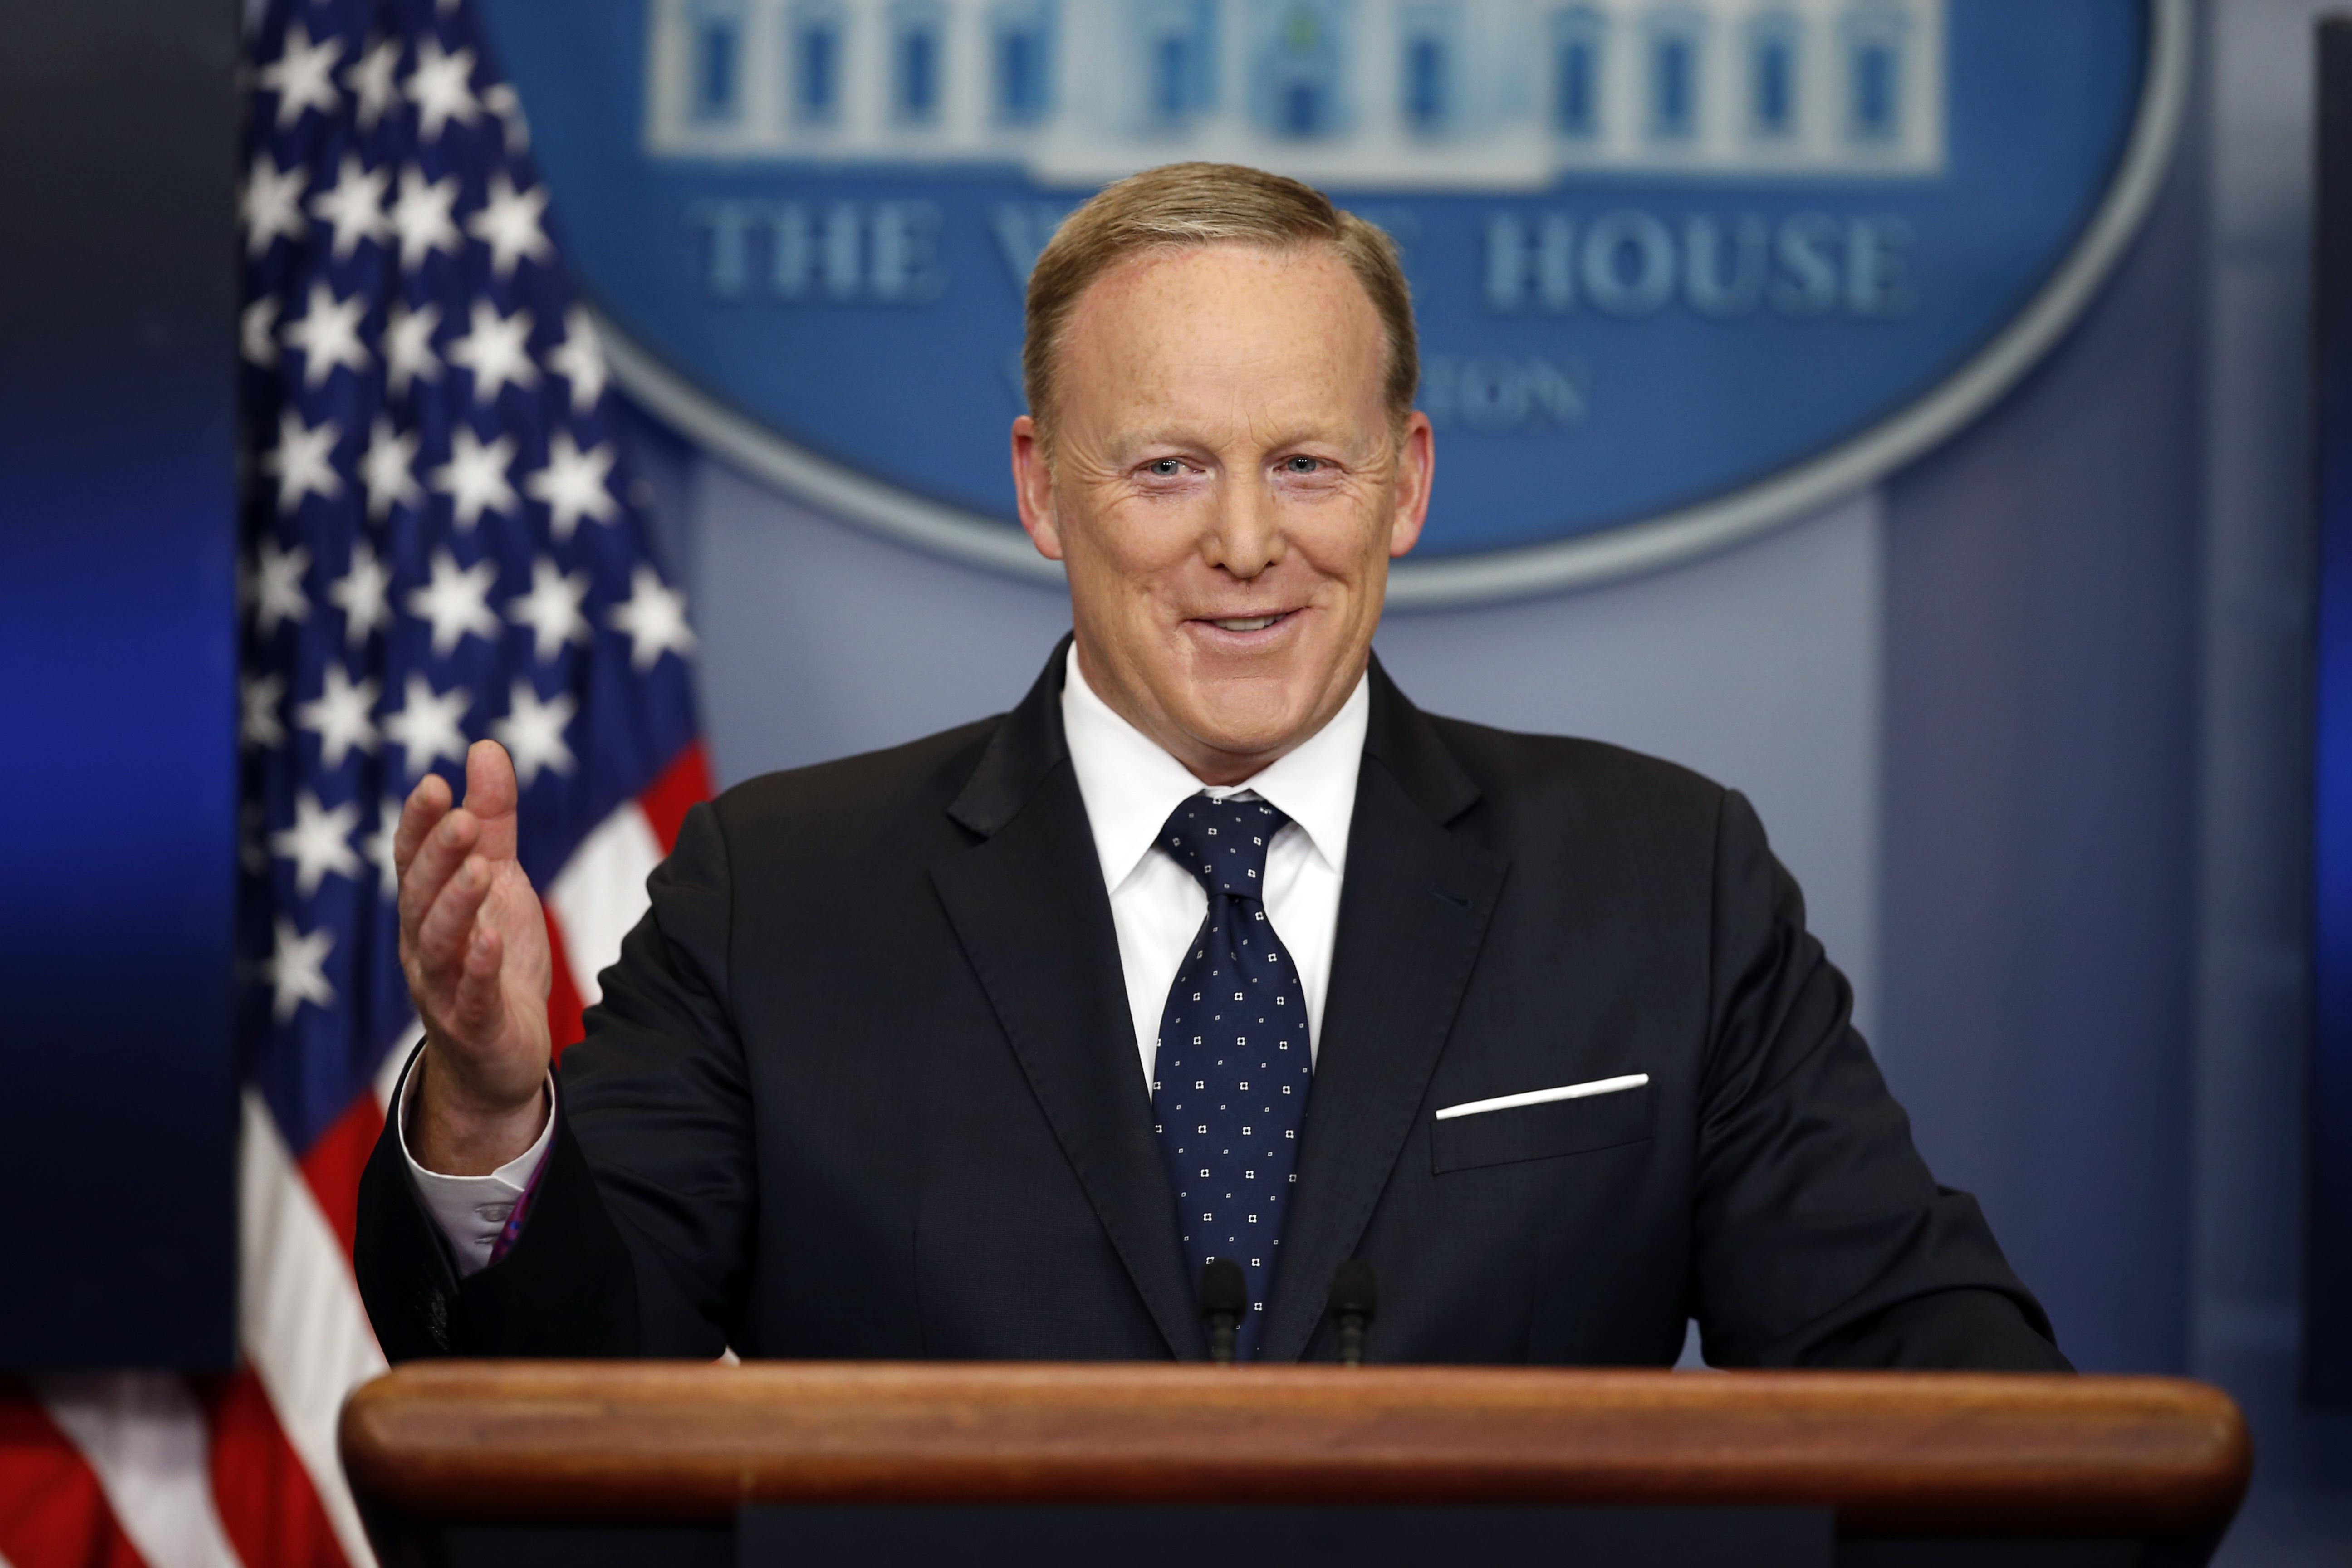 'Garbage move': Team takes heat for having Sean Spicer throw out first pitch on pride night